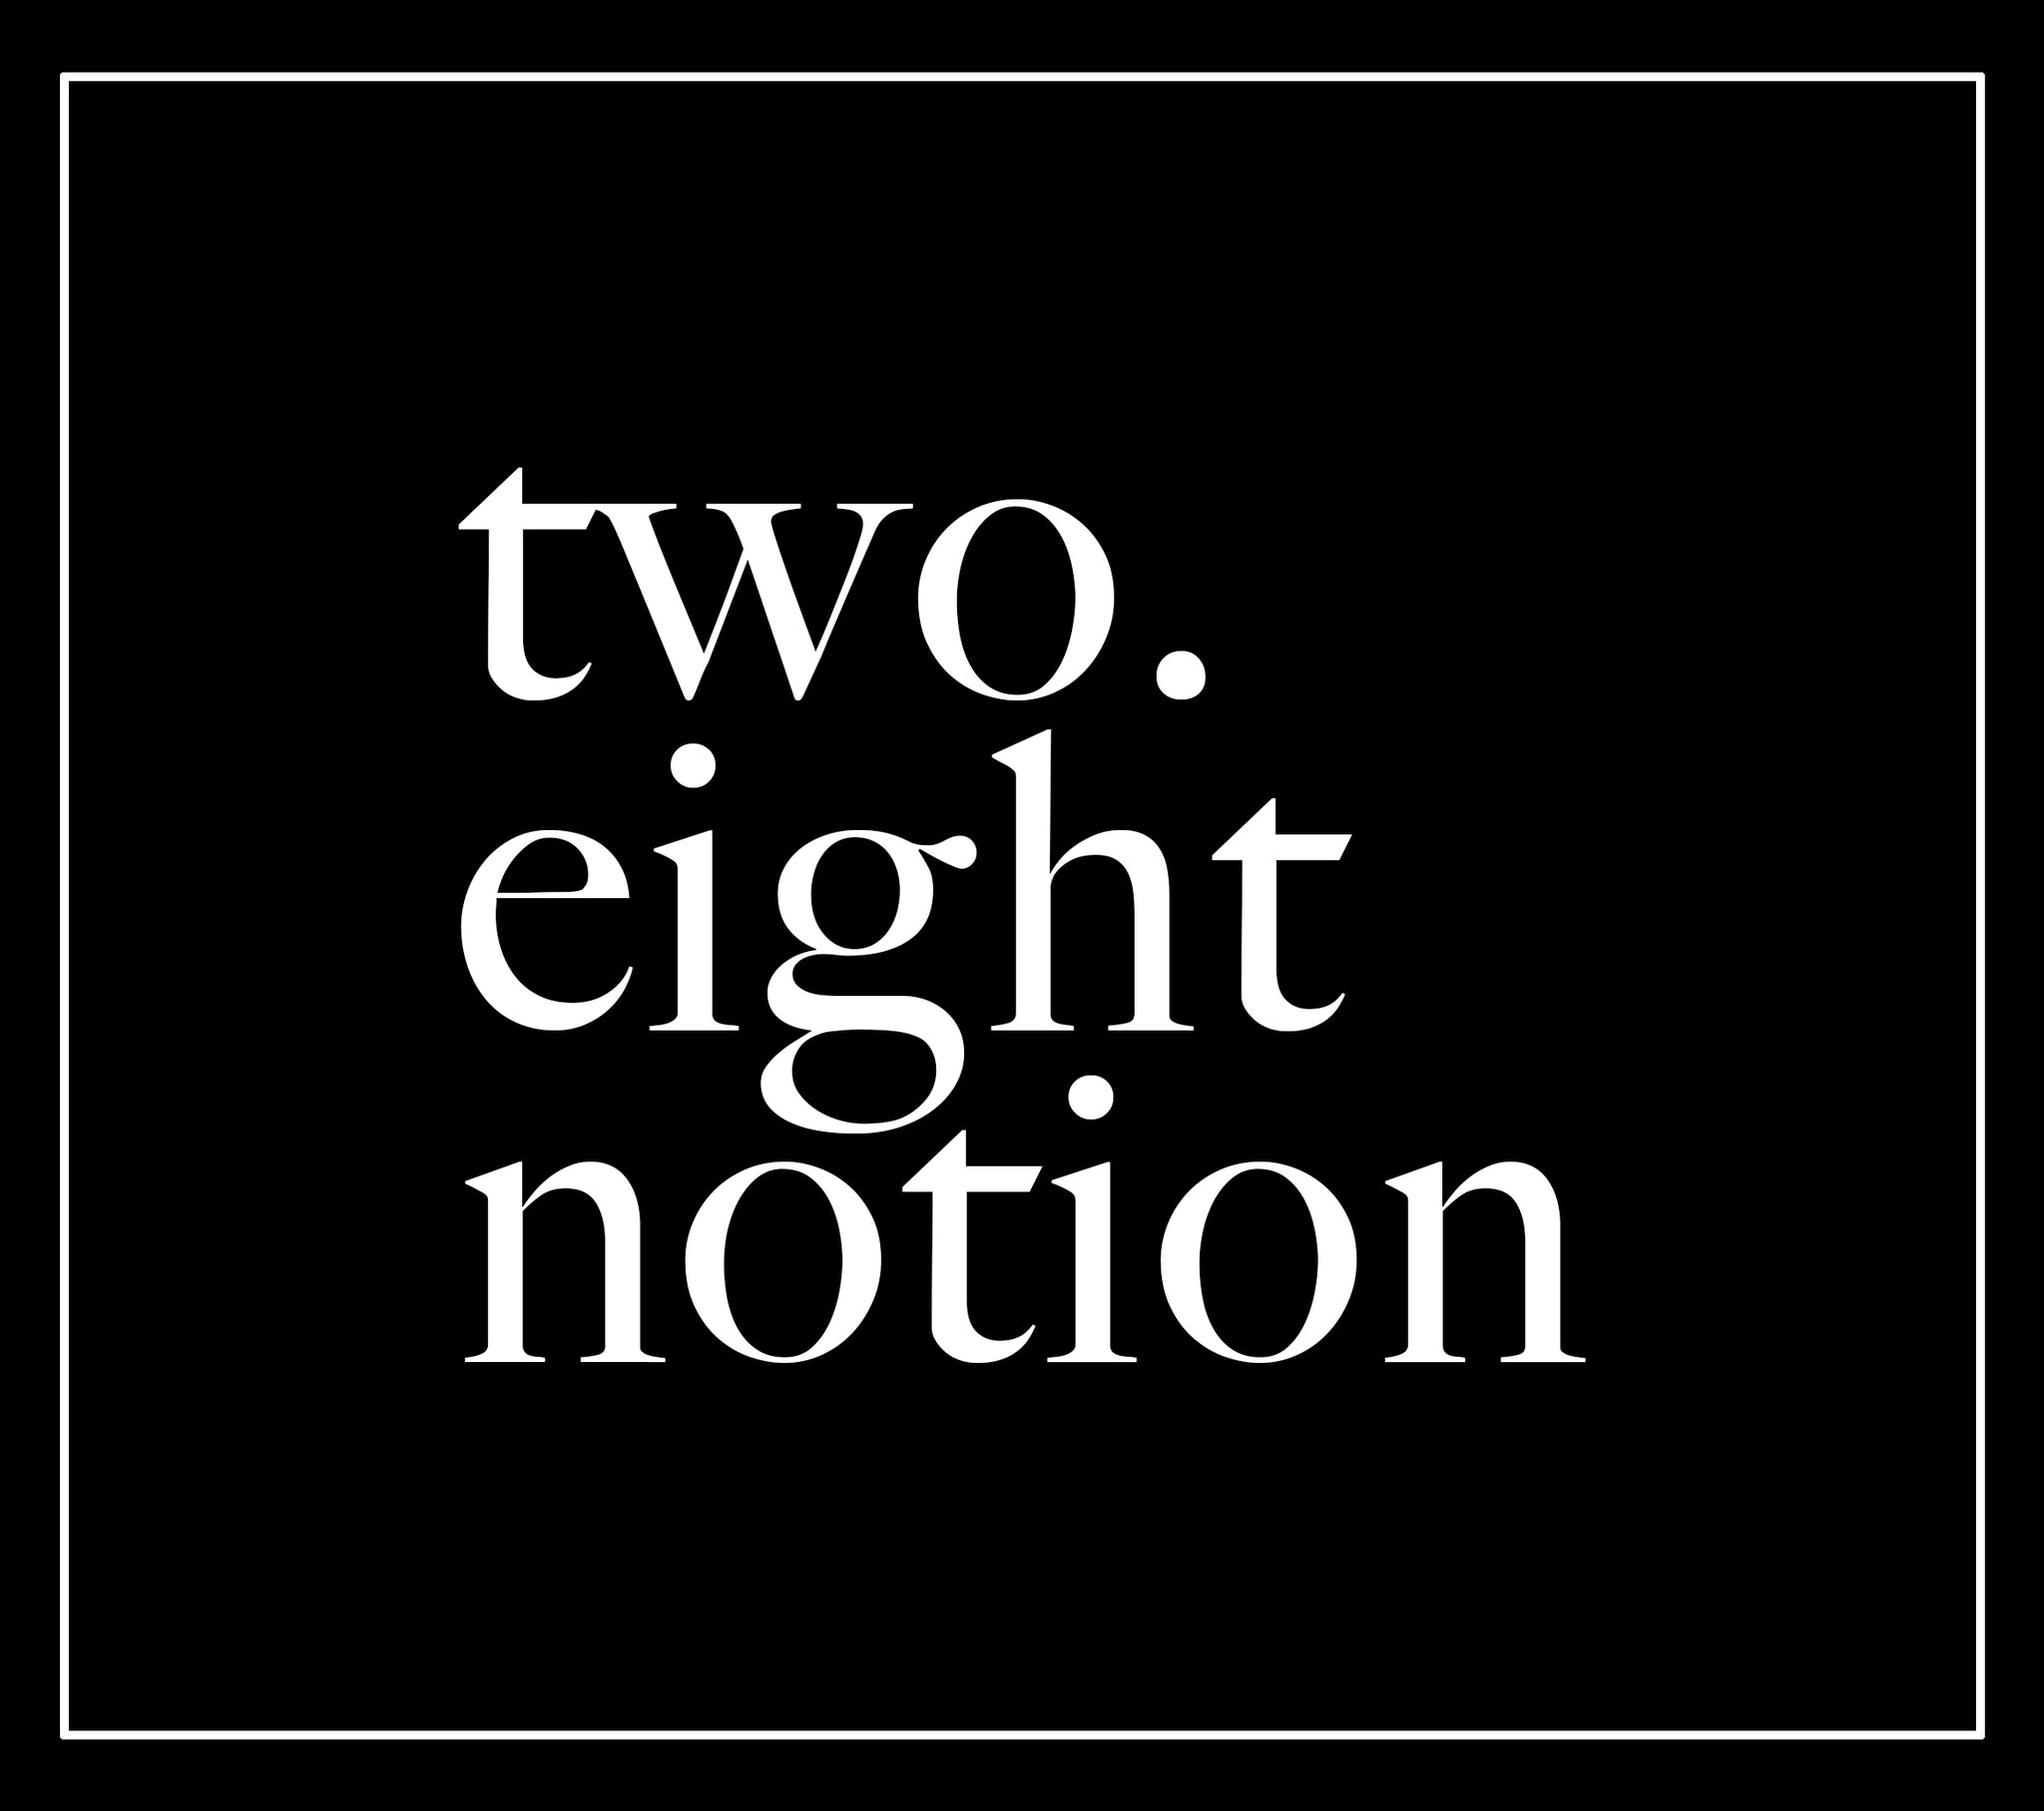 two point eight notion